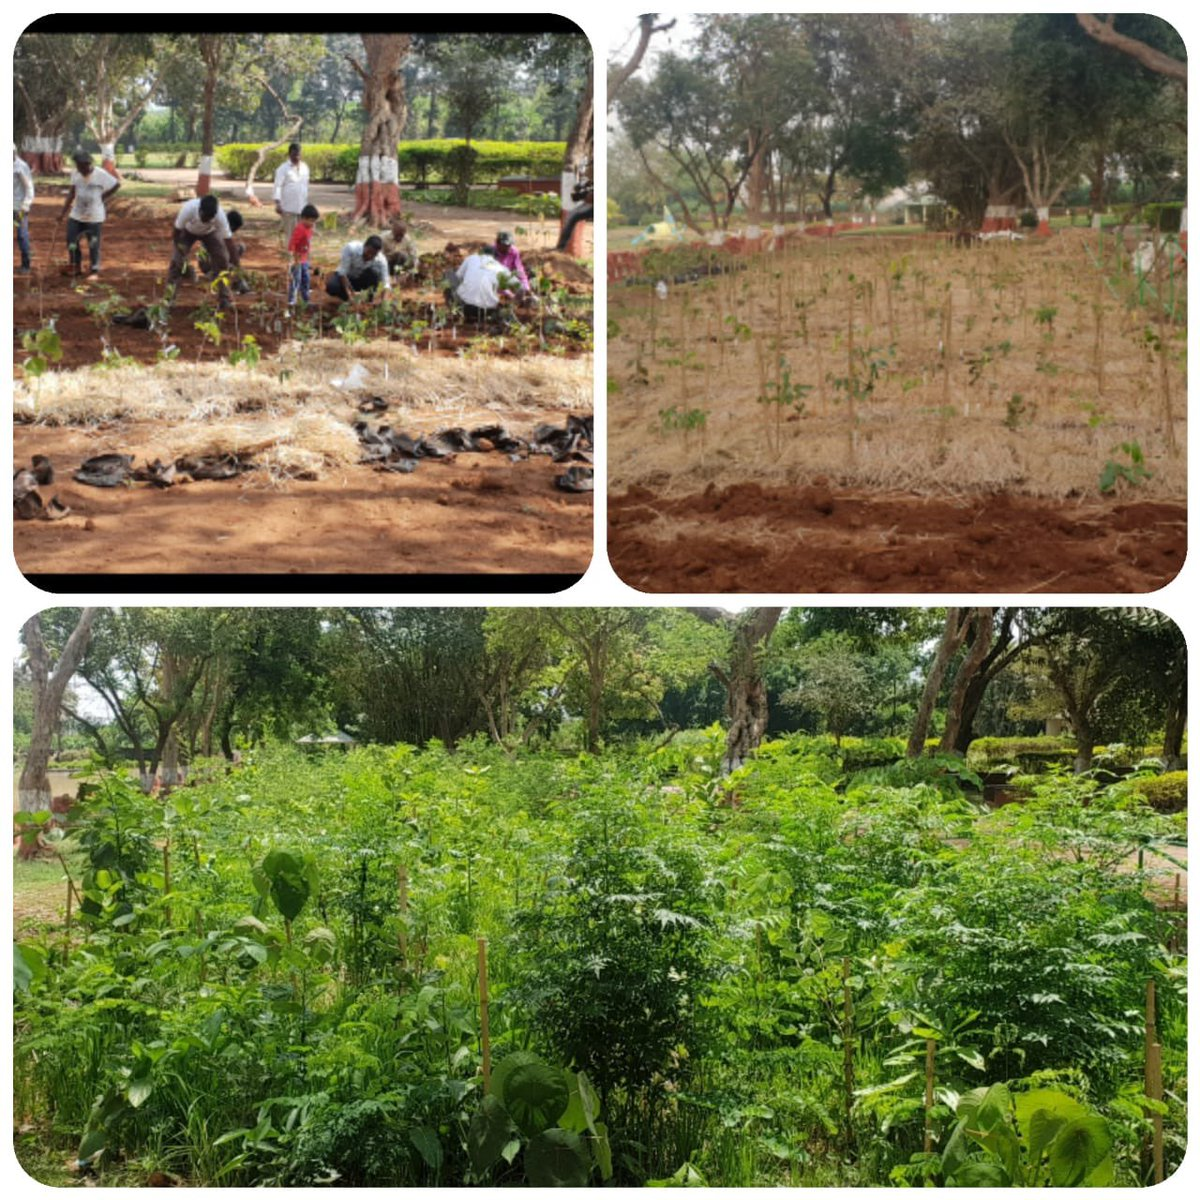 The M-W ward of @mybmc where CM Uddhav Thackeray ji initiated an urban forest plantation by miyawakee method last year on Republic Day. Recently in a review meeting, the AC Prithviraj Chavan ji sent me photos of that very plantation, growing from saplings into a thicket. (1/n)